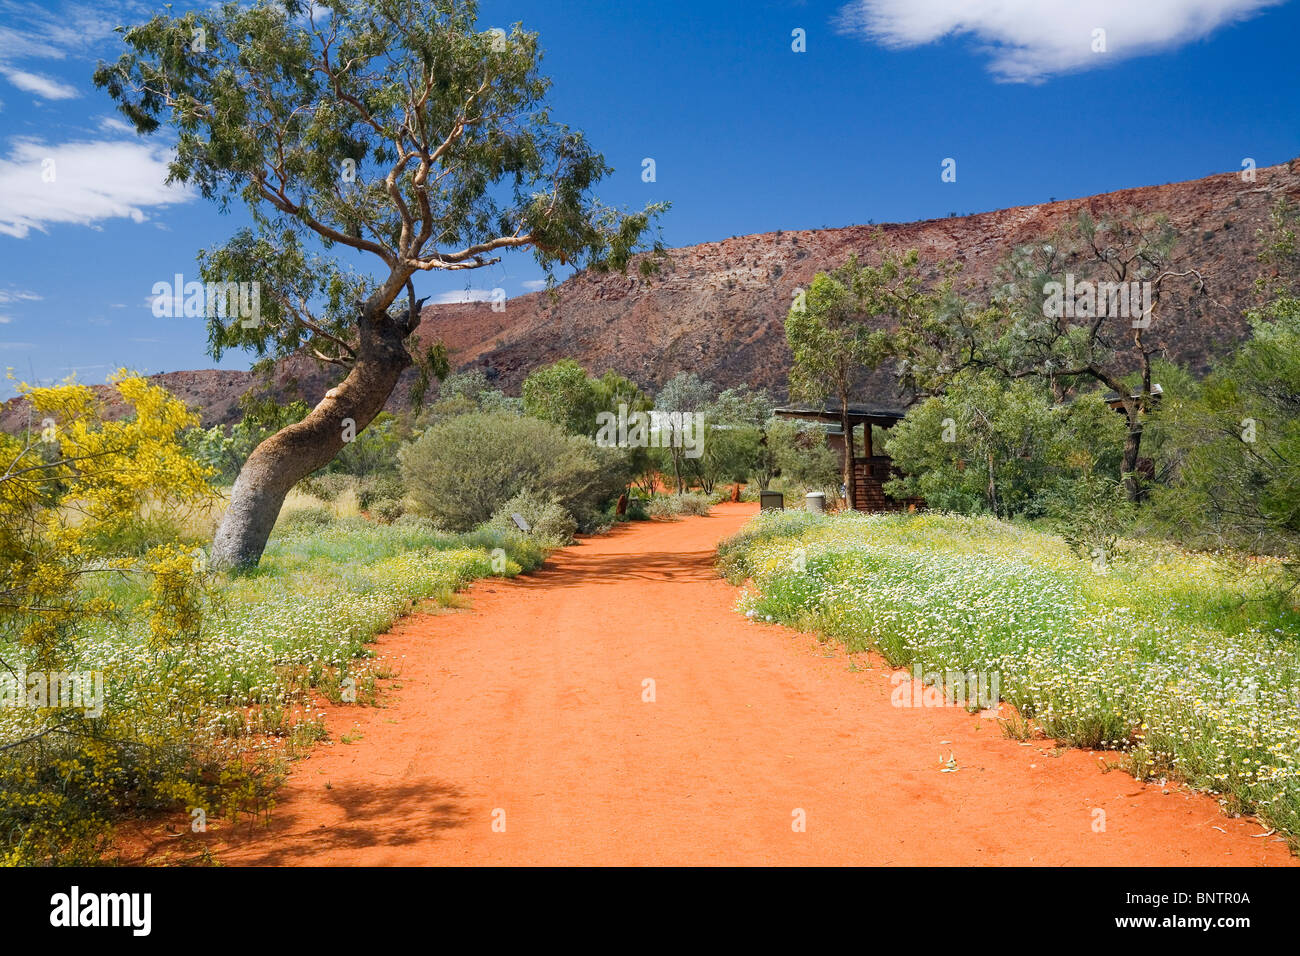 Alice Springs Desert Park.  Alice Springs, Northern Territory, AUSTRALIA. - Stock Image